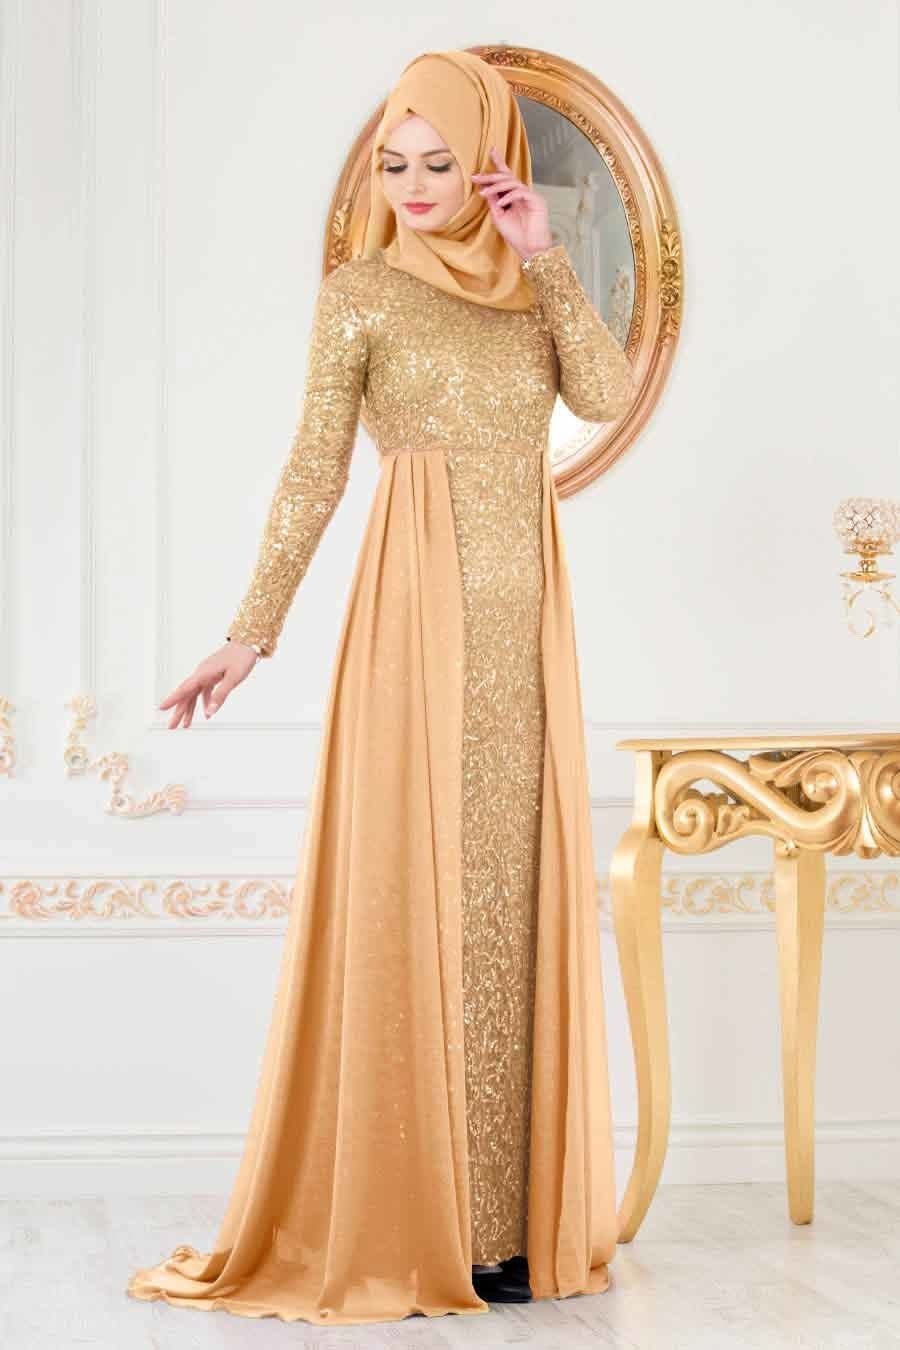 Nayla Collection Pullu Gold Tesettur Abiye Elbise 90000gold Tesetturisland Com Elbise Elbiseler The Dress